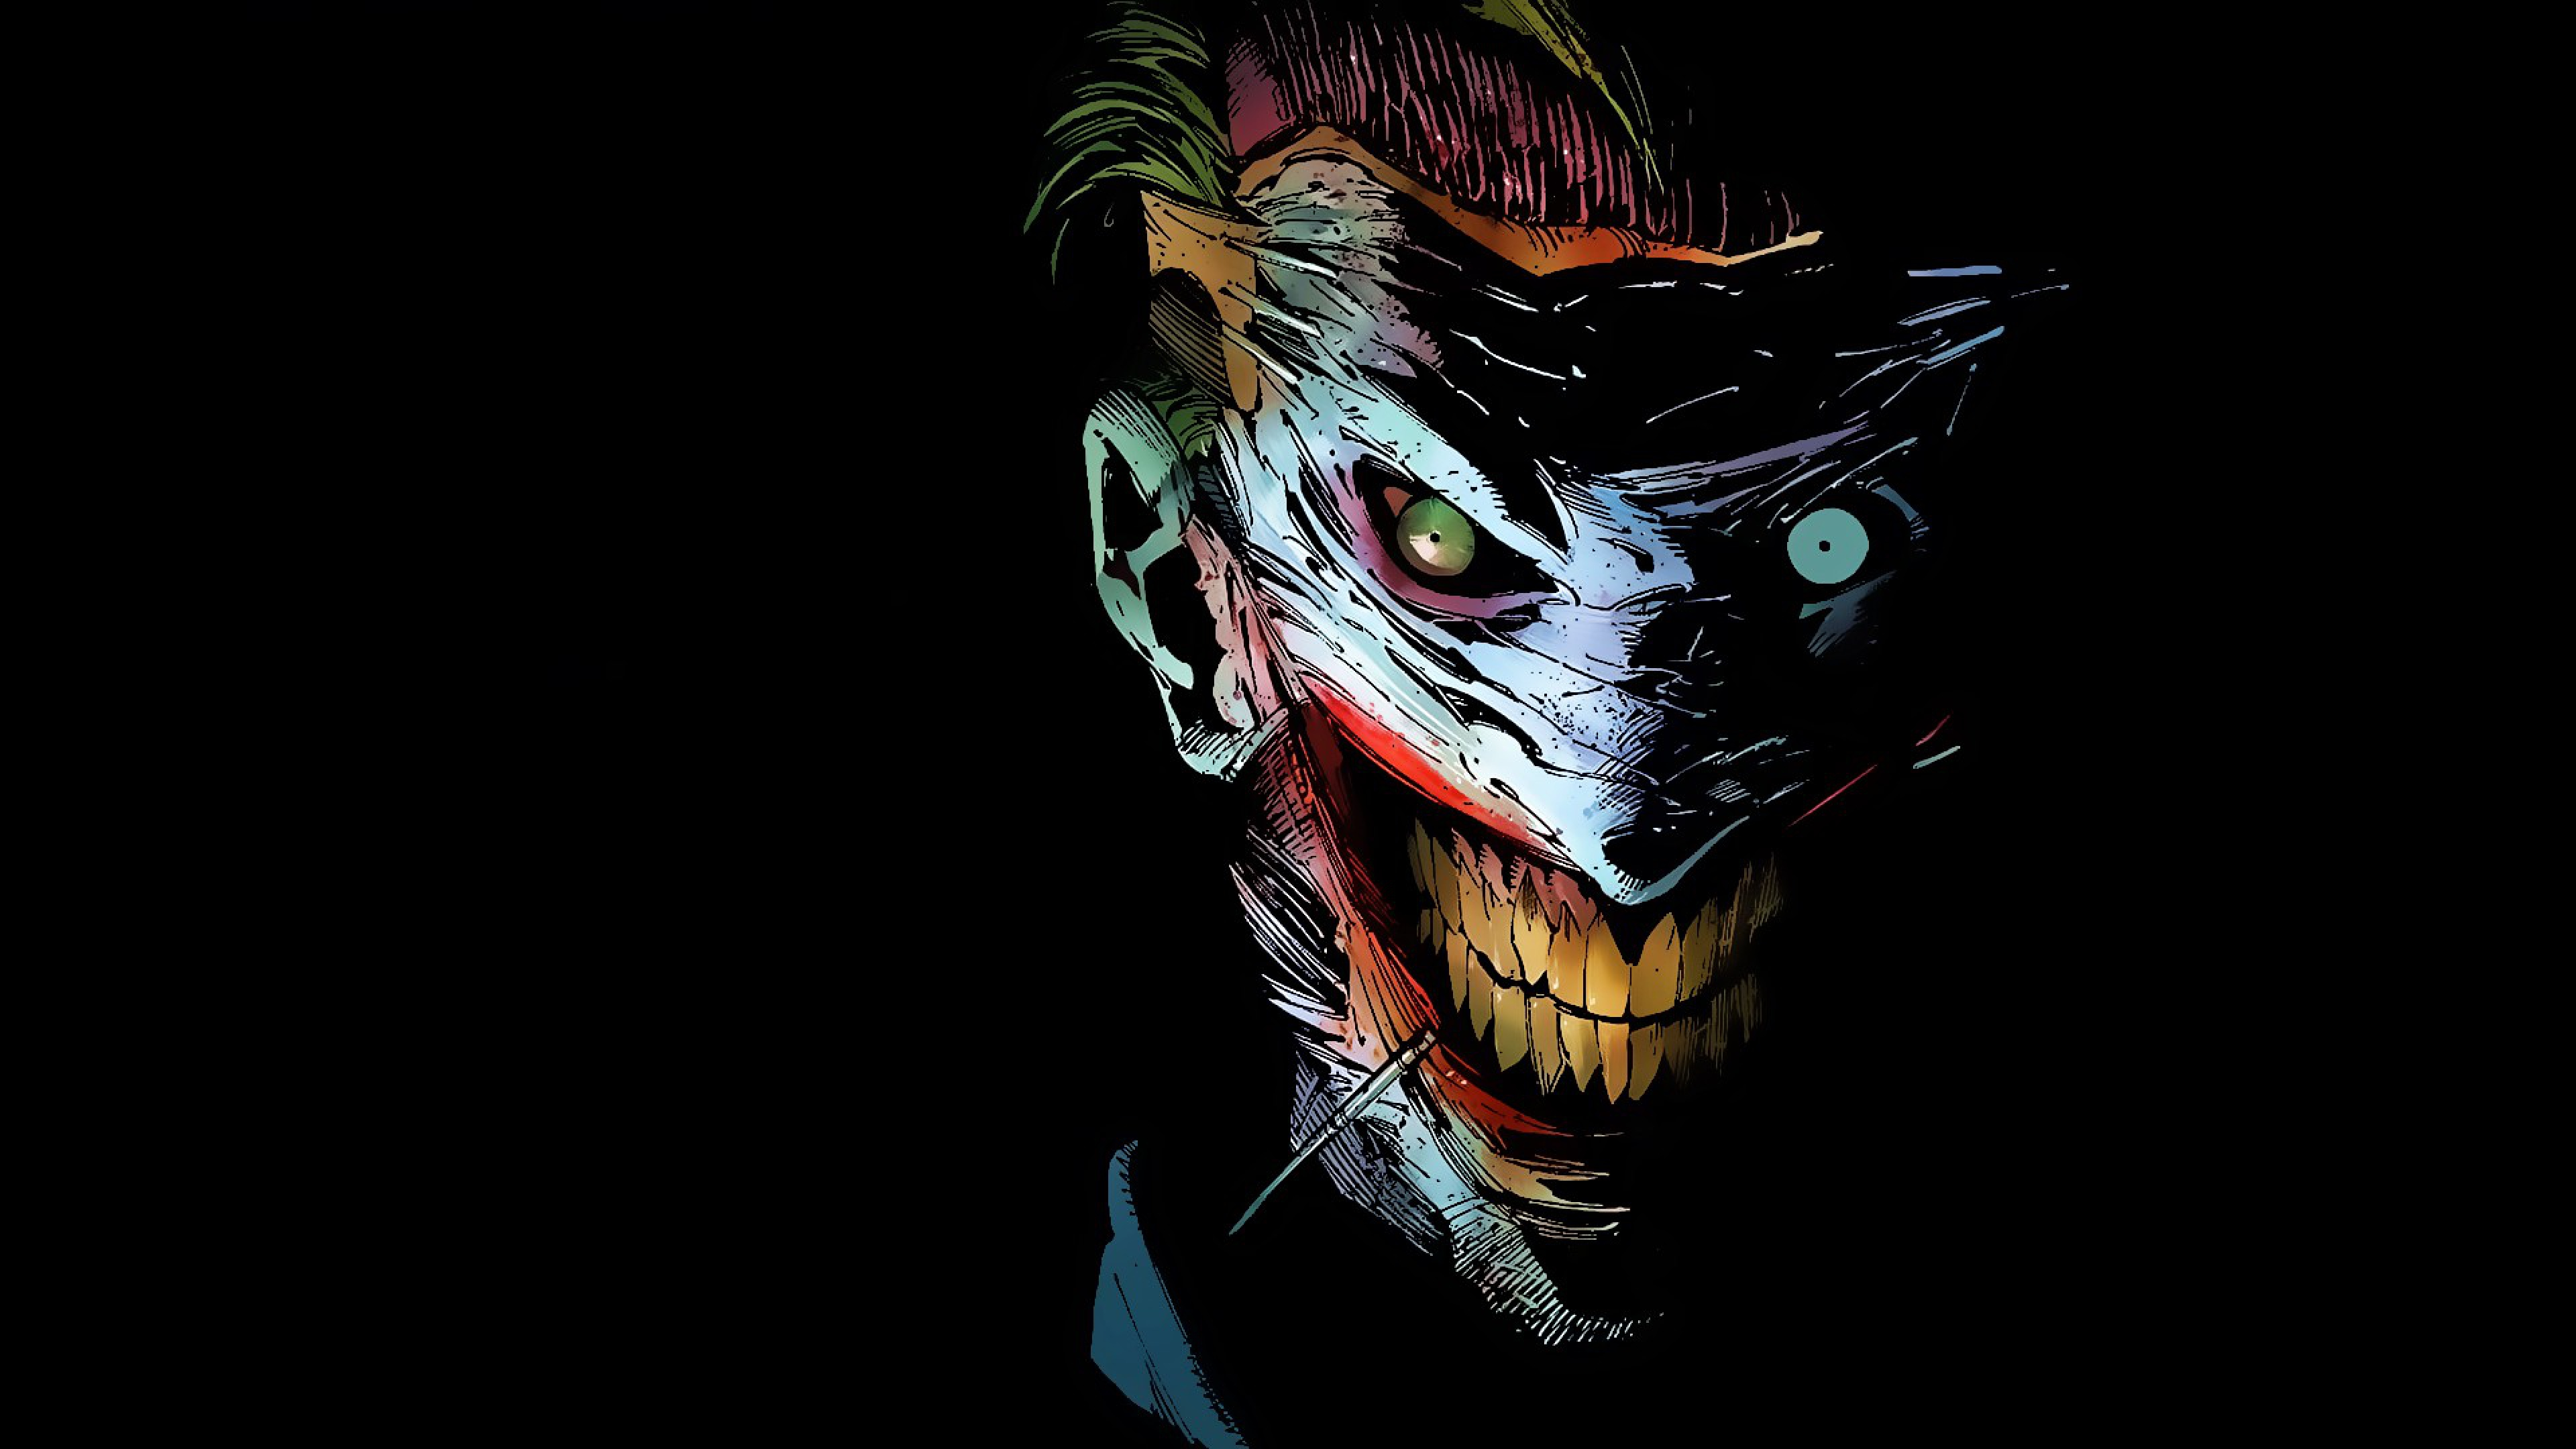 Joker 4k Wallpapers For Your Desktop Or Mobile Screen Free And Easy To Download